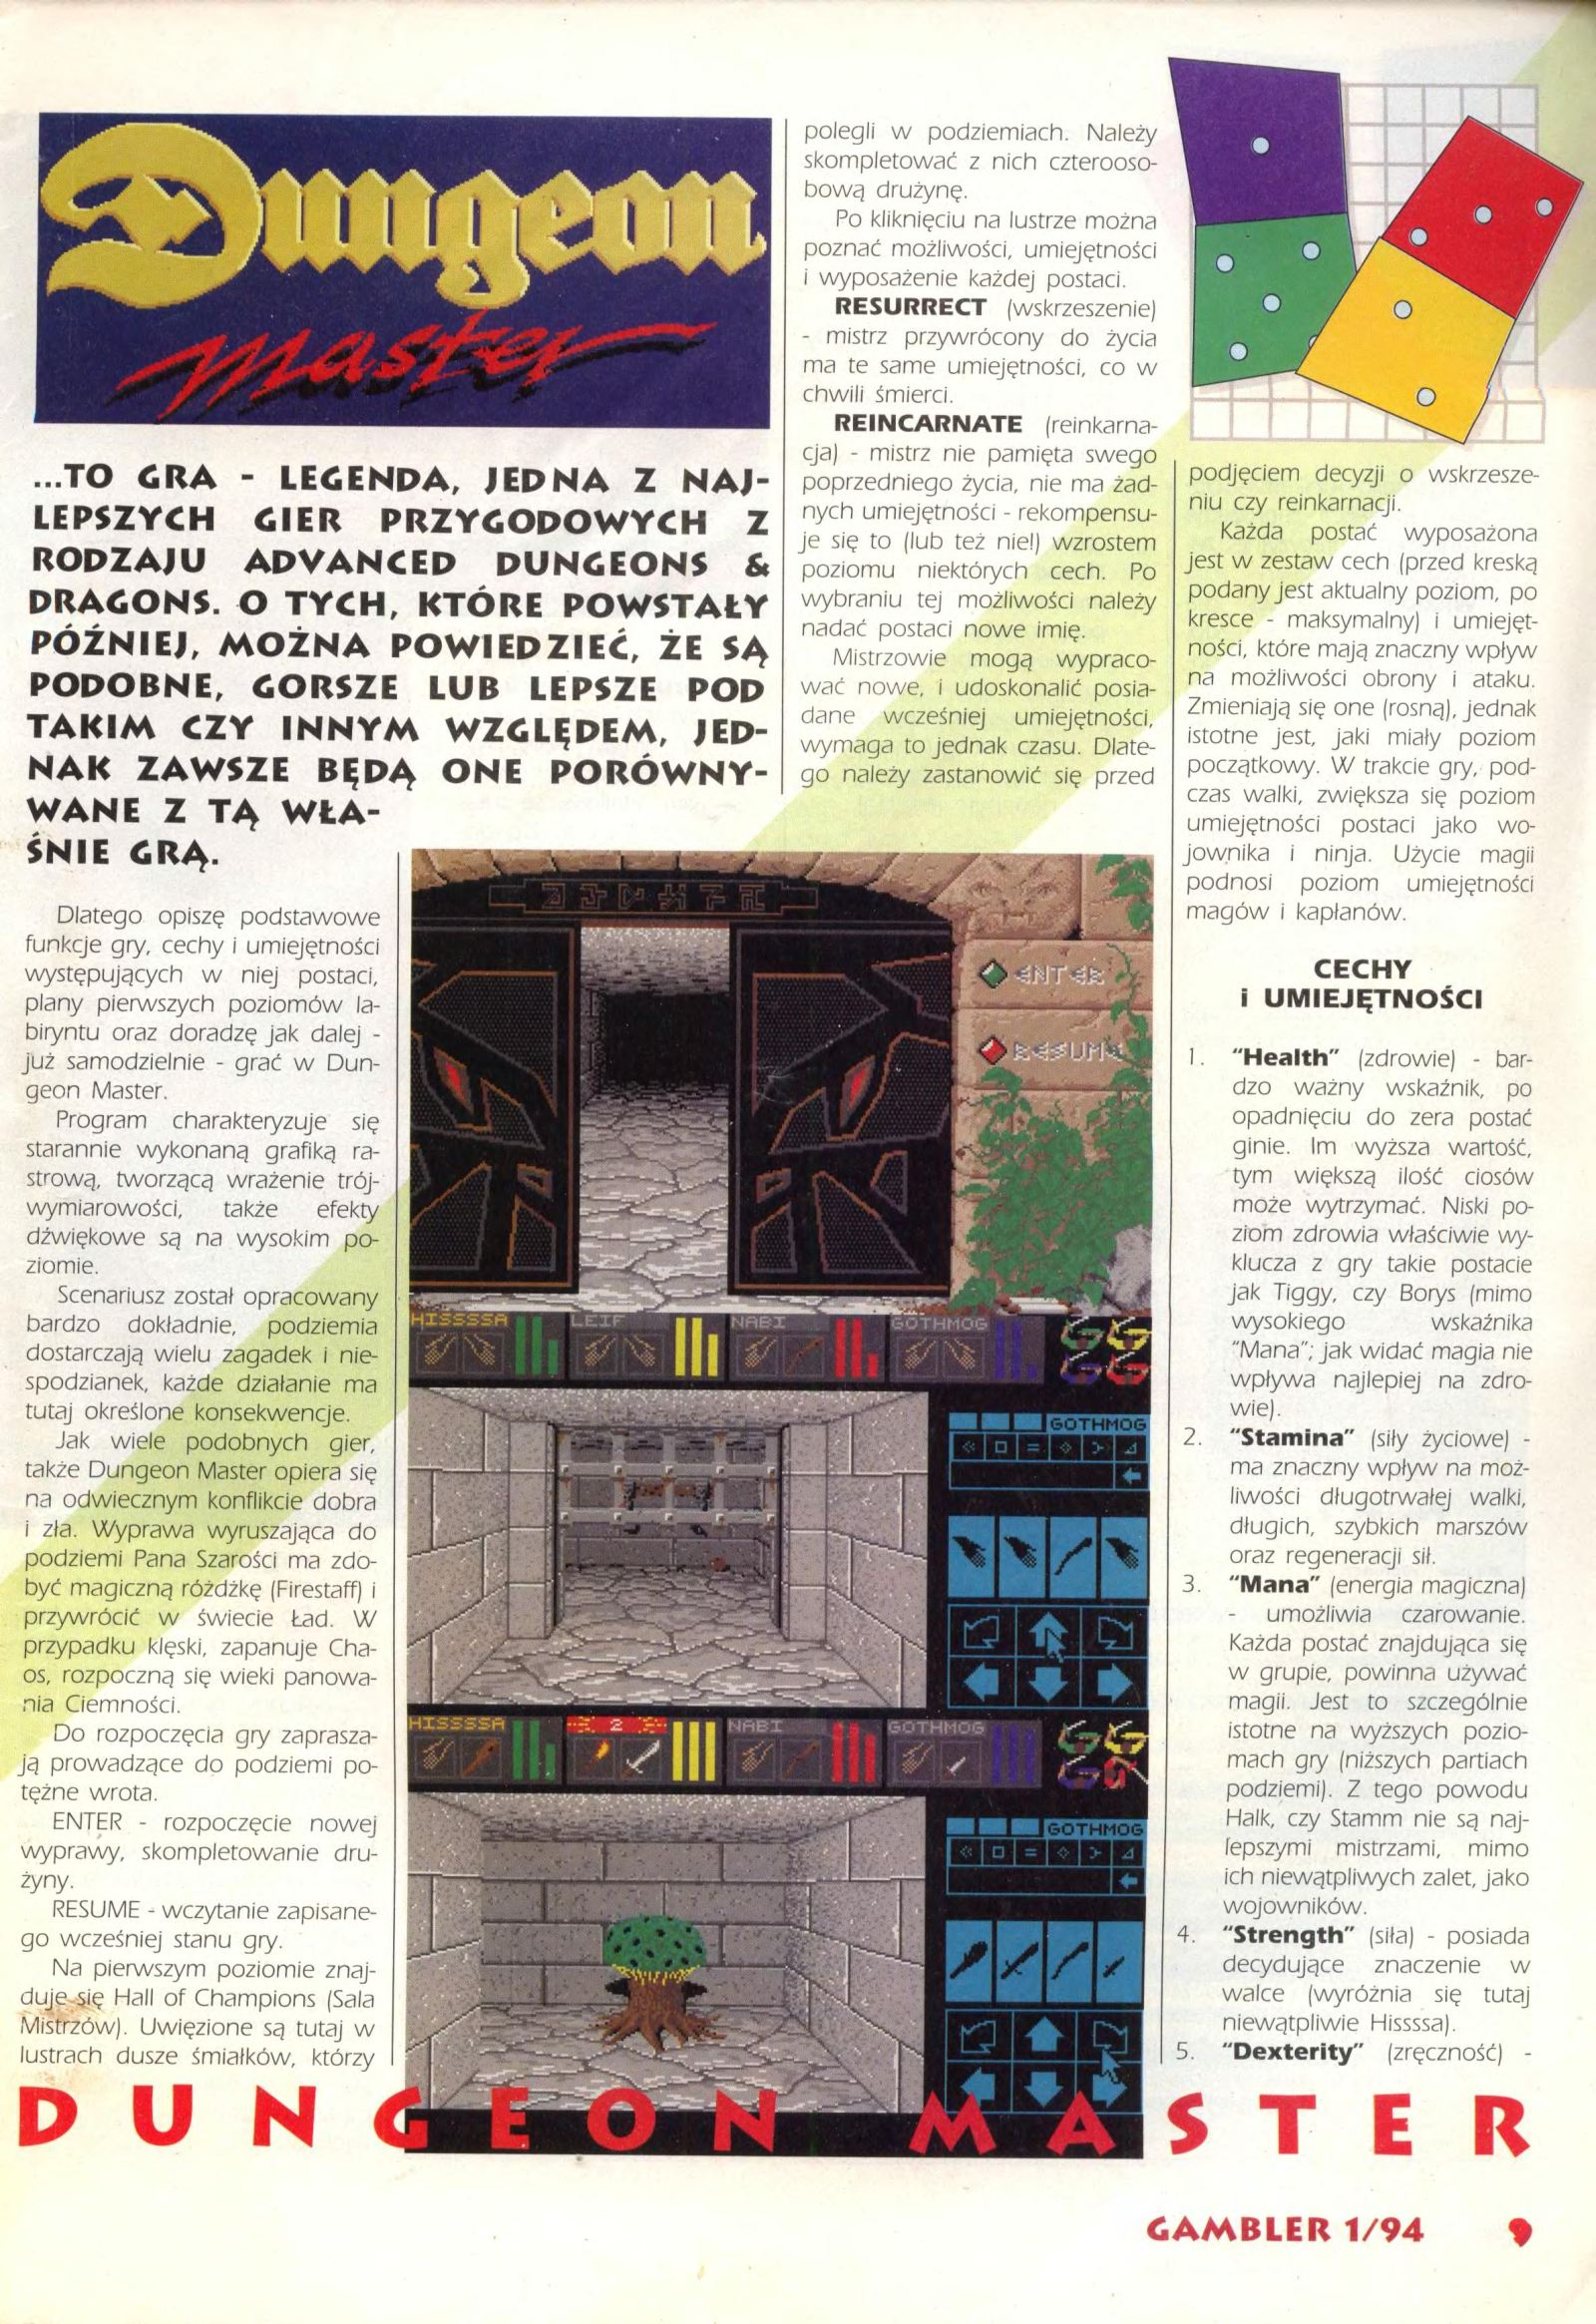 Dungeon Master Guide published in Polish magazine 'Gambler', January 1994, Page 9